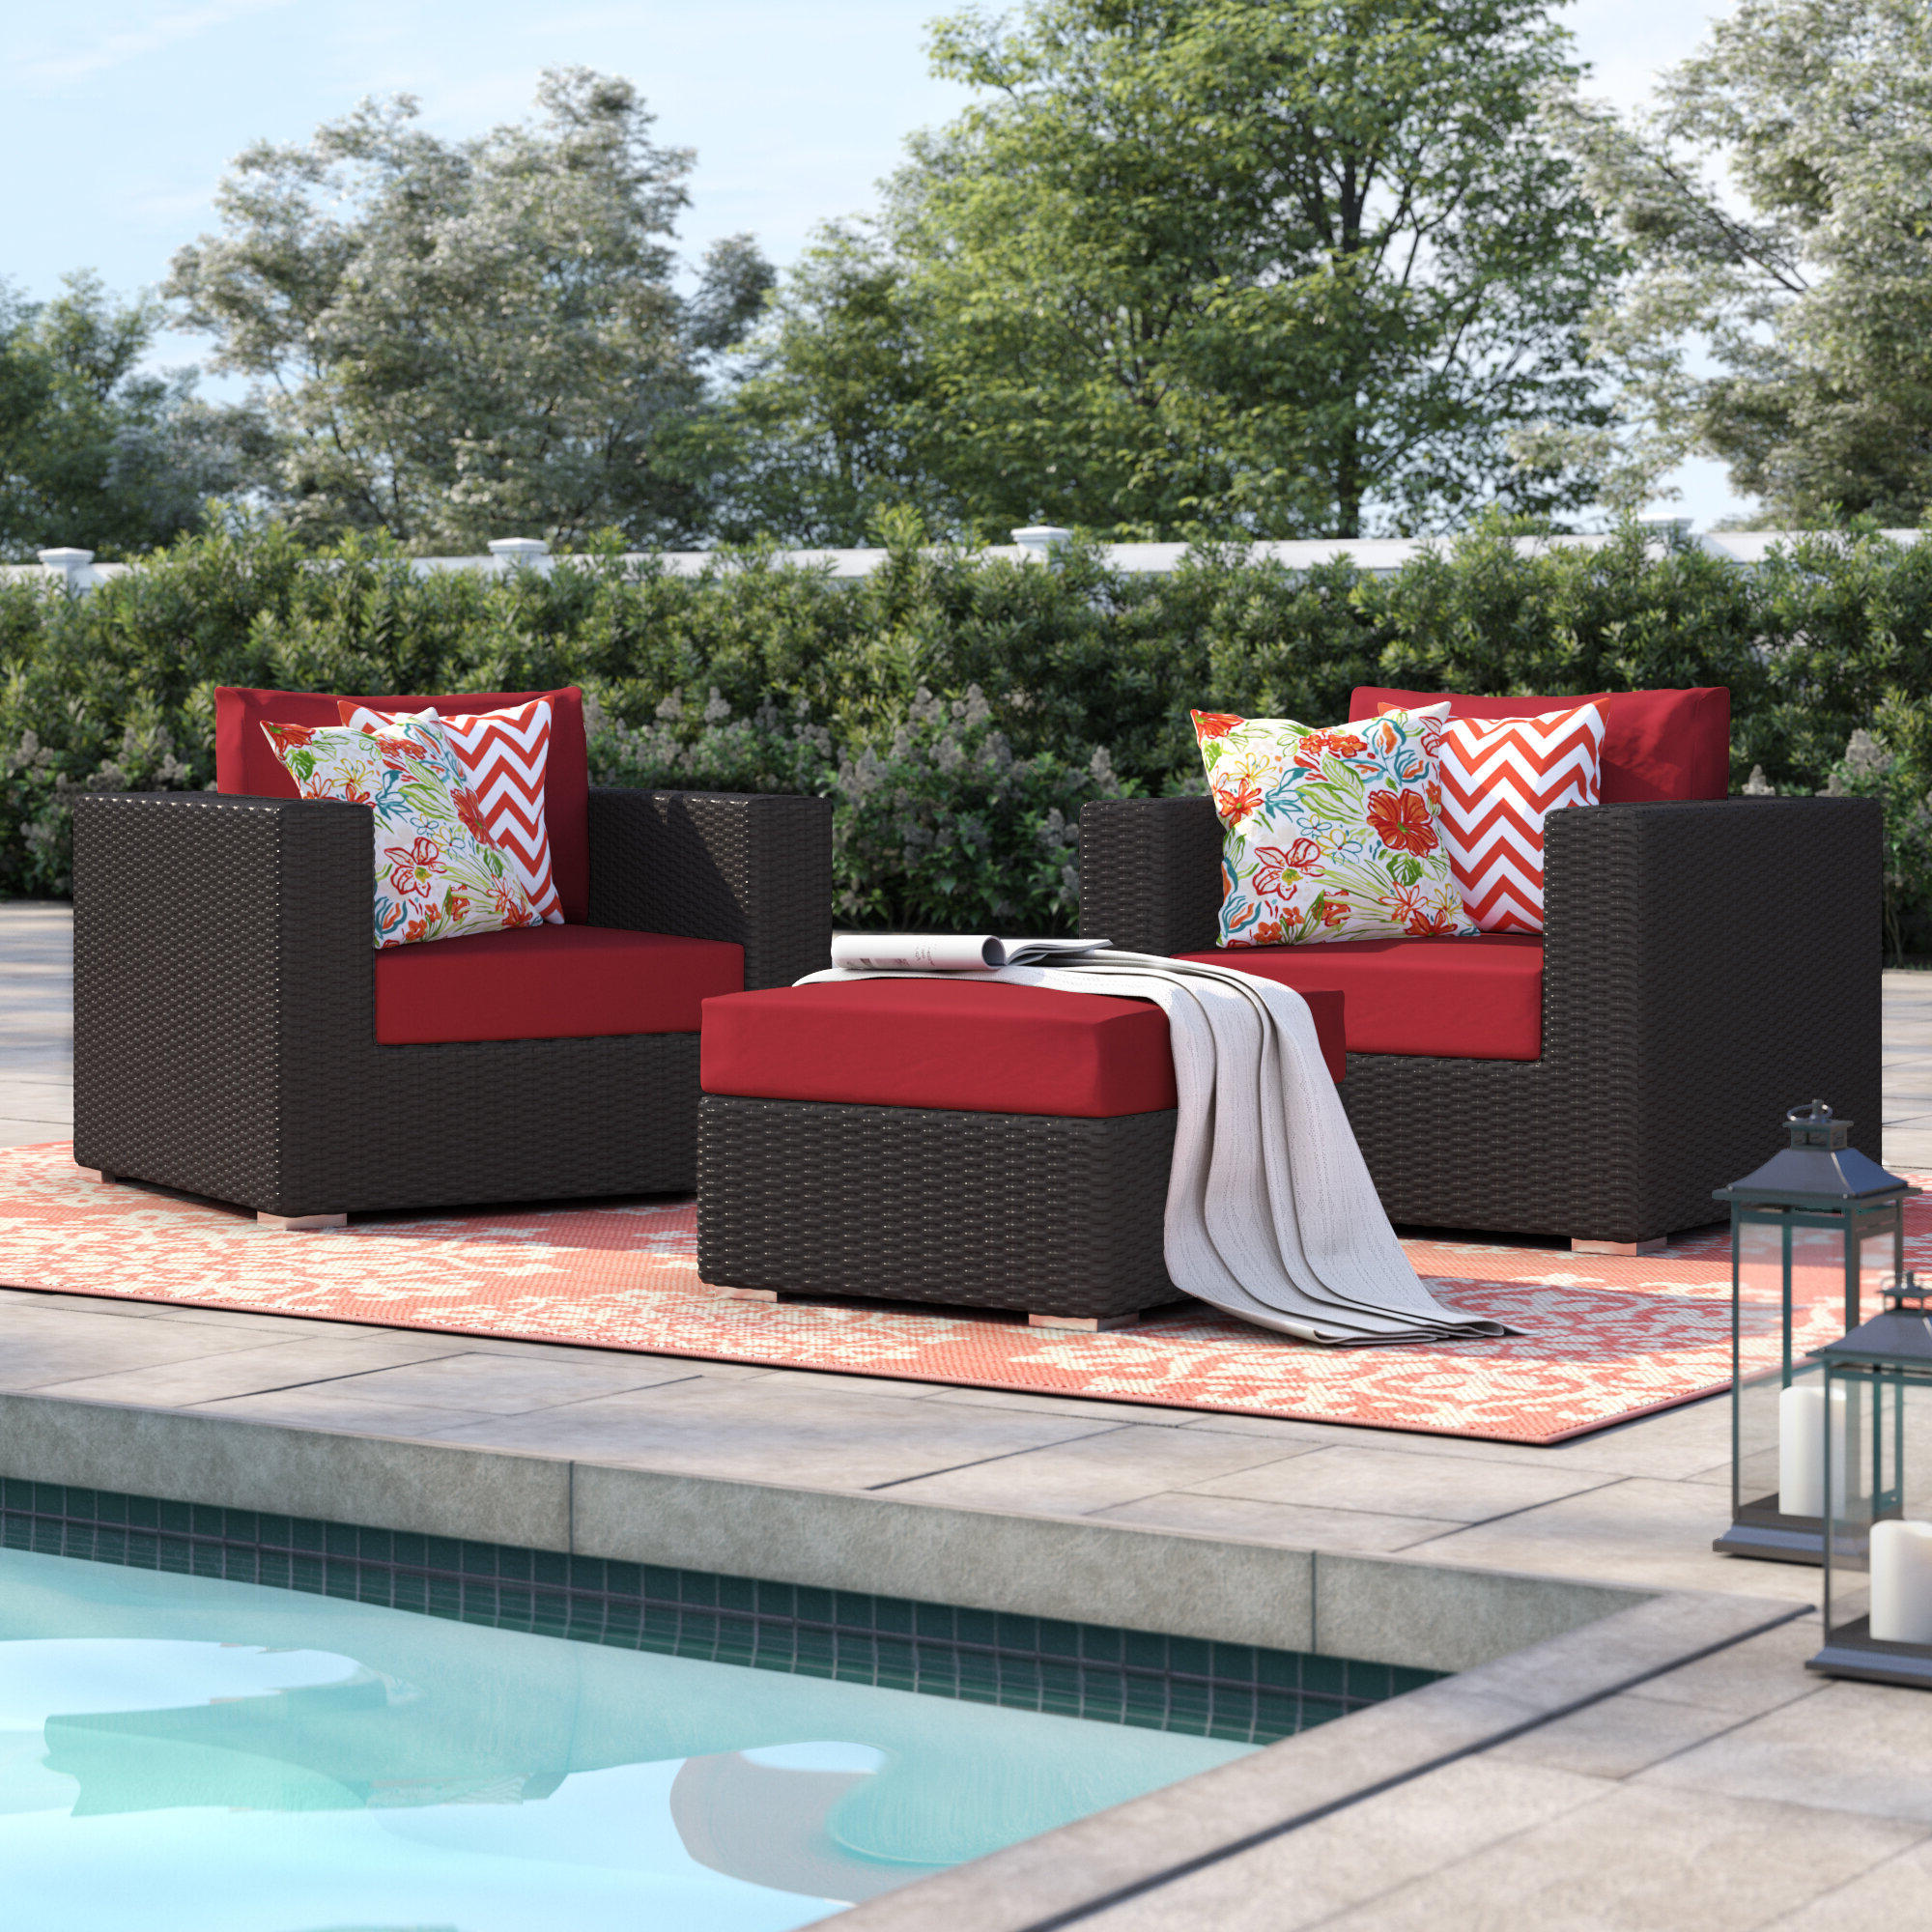 Most Current Brentwood 3 Piece Rattan Conversation Set With Cushions Throughout Brentwood Patio Sofas With Cushions (View 12 of 18)